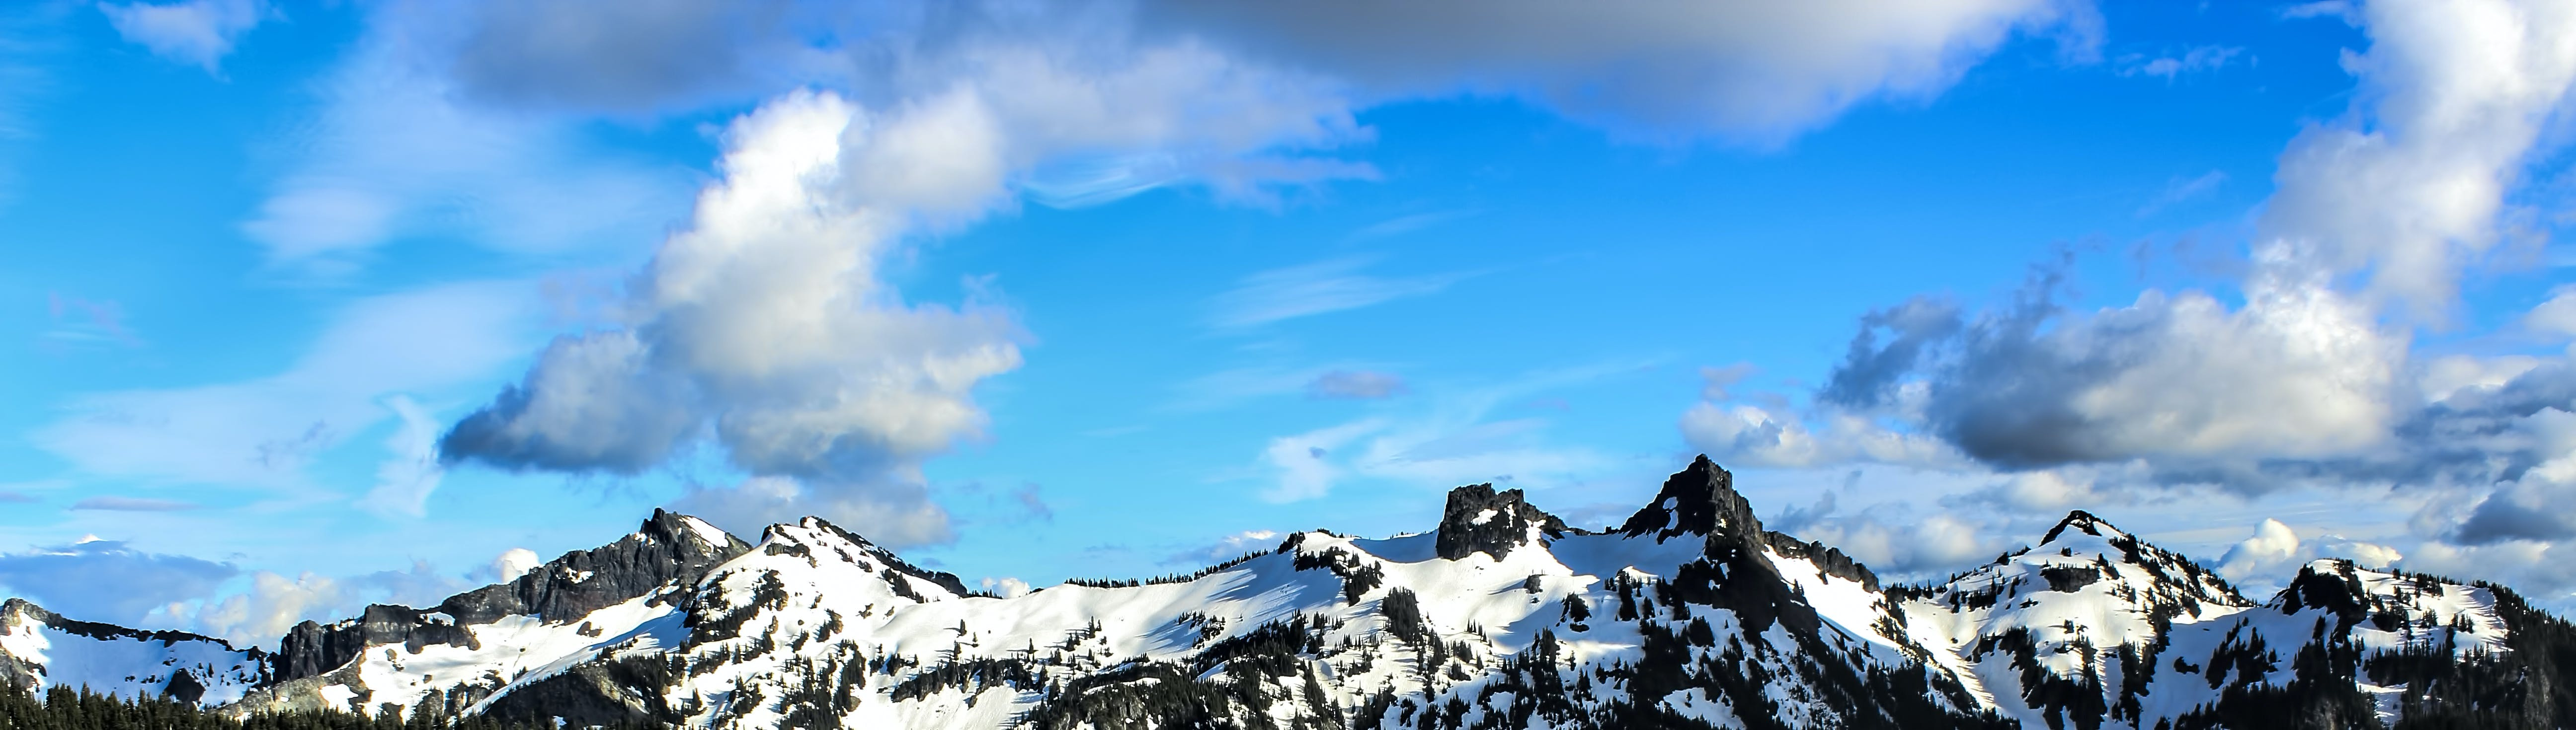 White and Black Snowy Mountain Under Blue Cloudy Sky